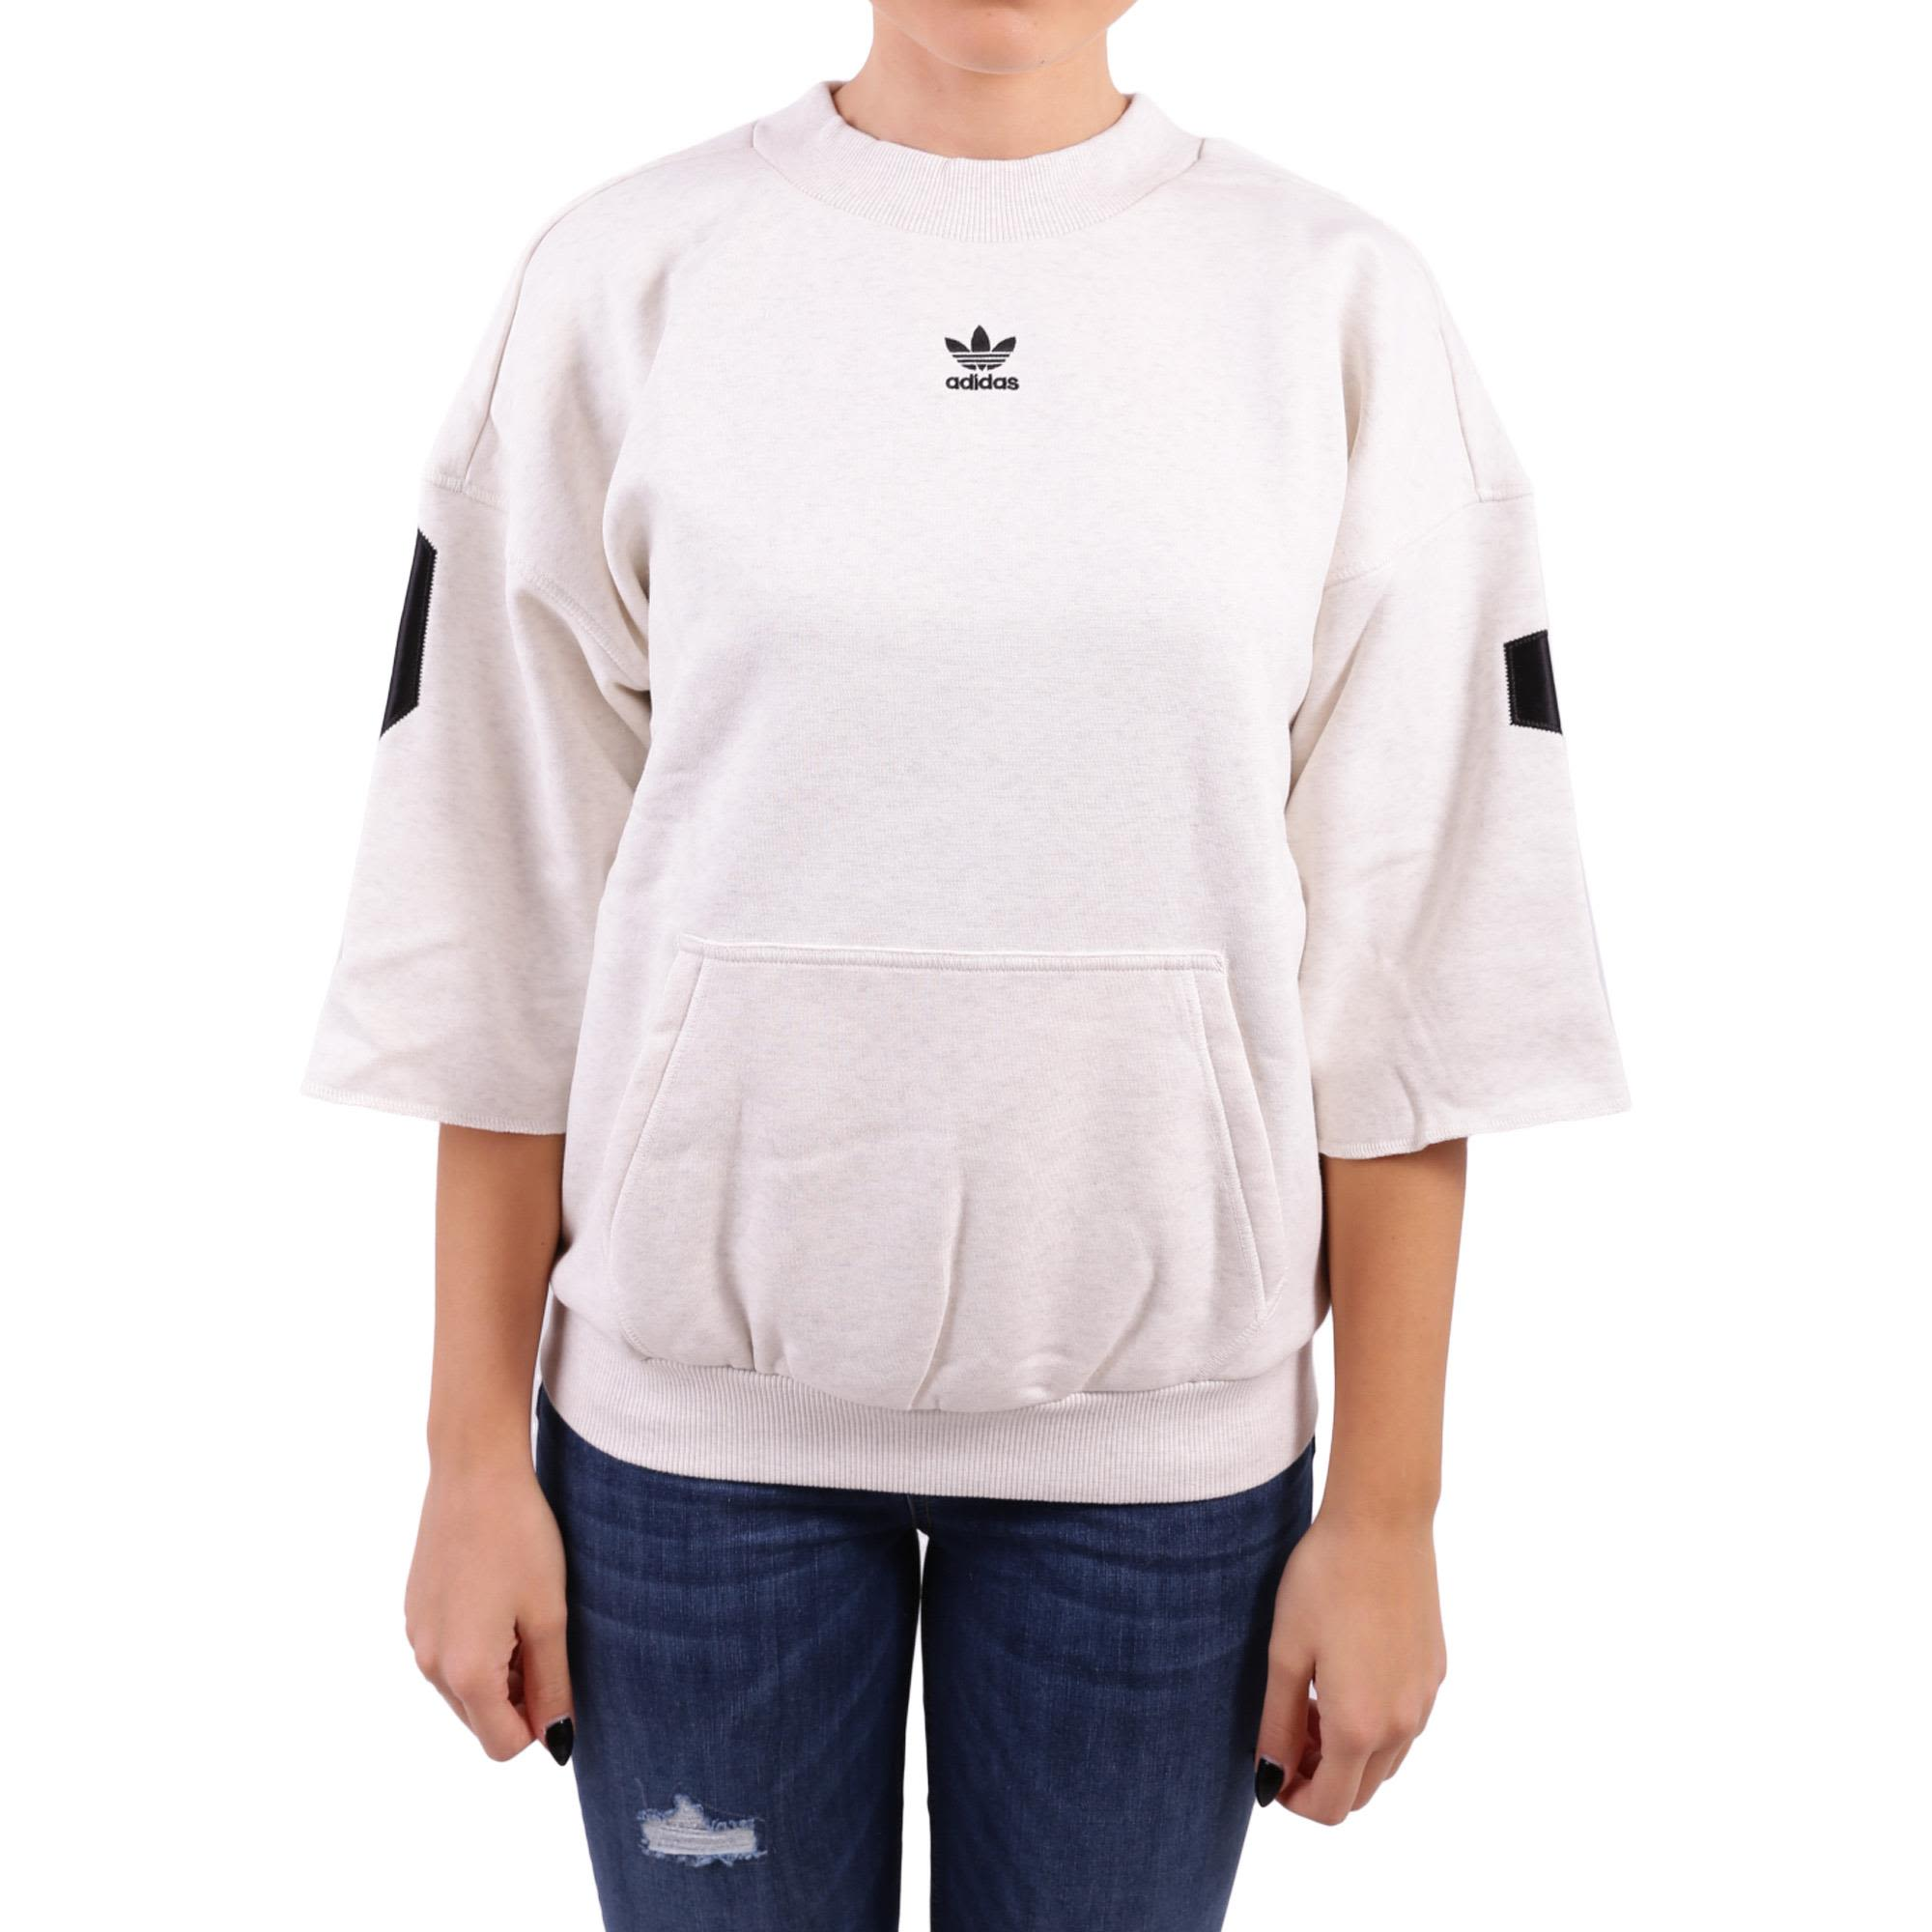 Adidas Cotton Blend Sweatshirt